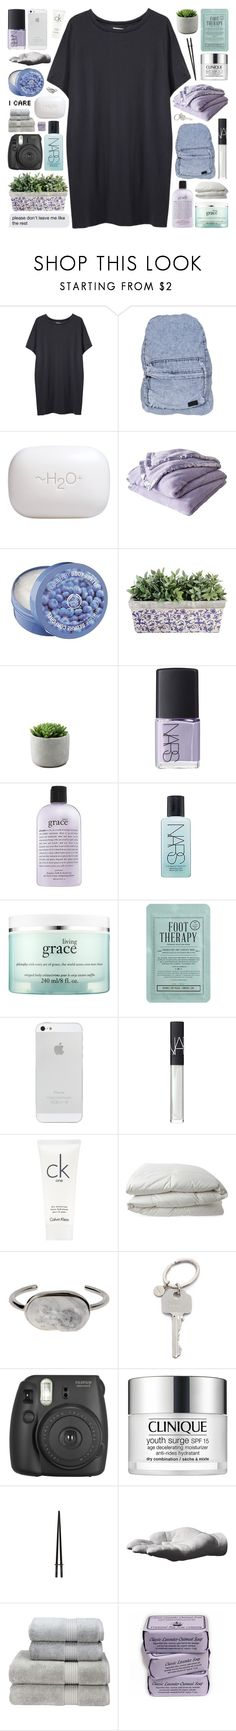 """""""you got me // testing taglist"""" by other-flying ❤ liked on Polyvore featuring Organic by John Patrick, Stussy, H2O+, Shabby Chic, The Body Shop, NARS Cosmetics, philosophy, Kocostar, Calvin Klein and Nimbus"""